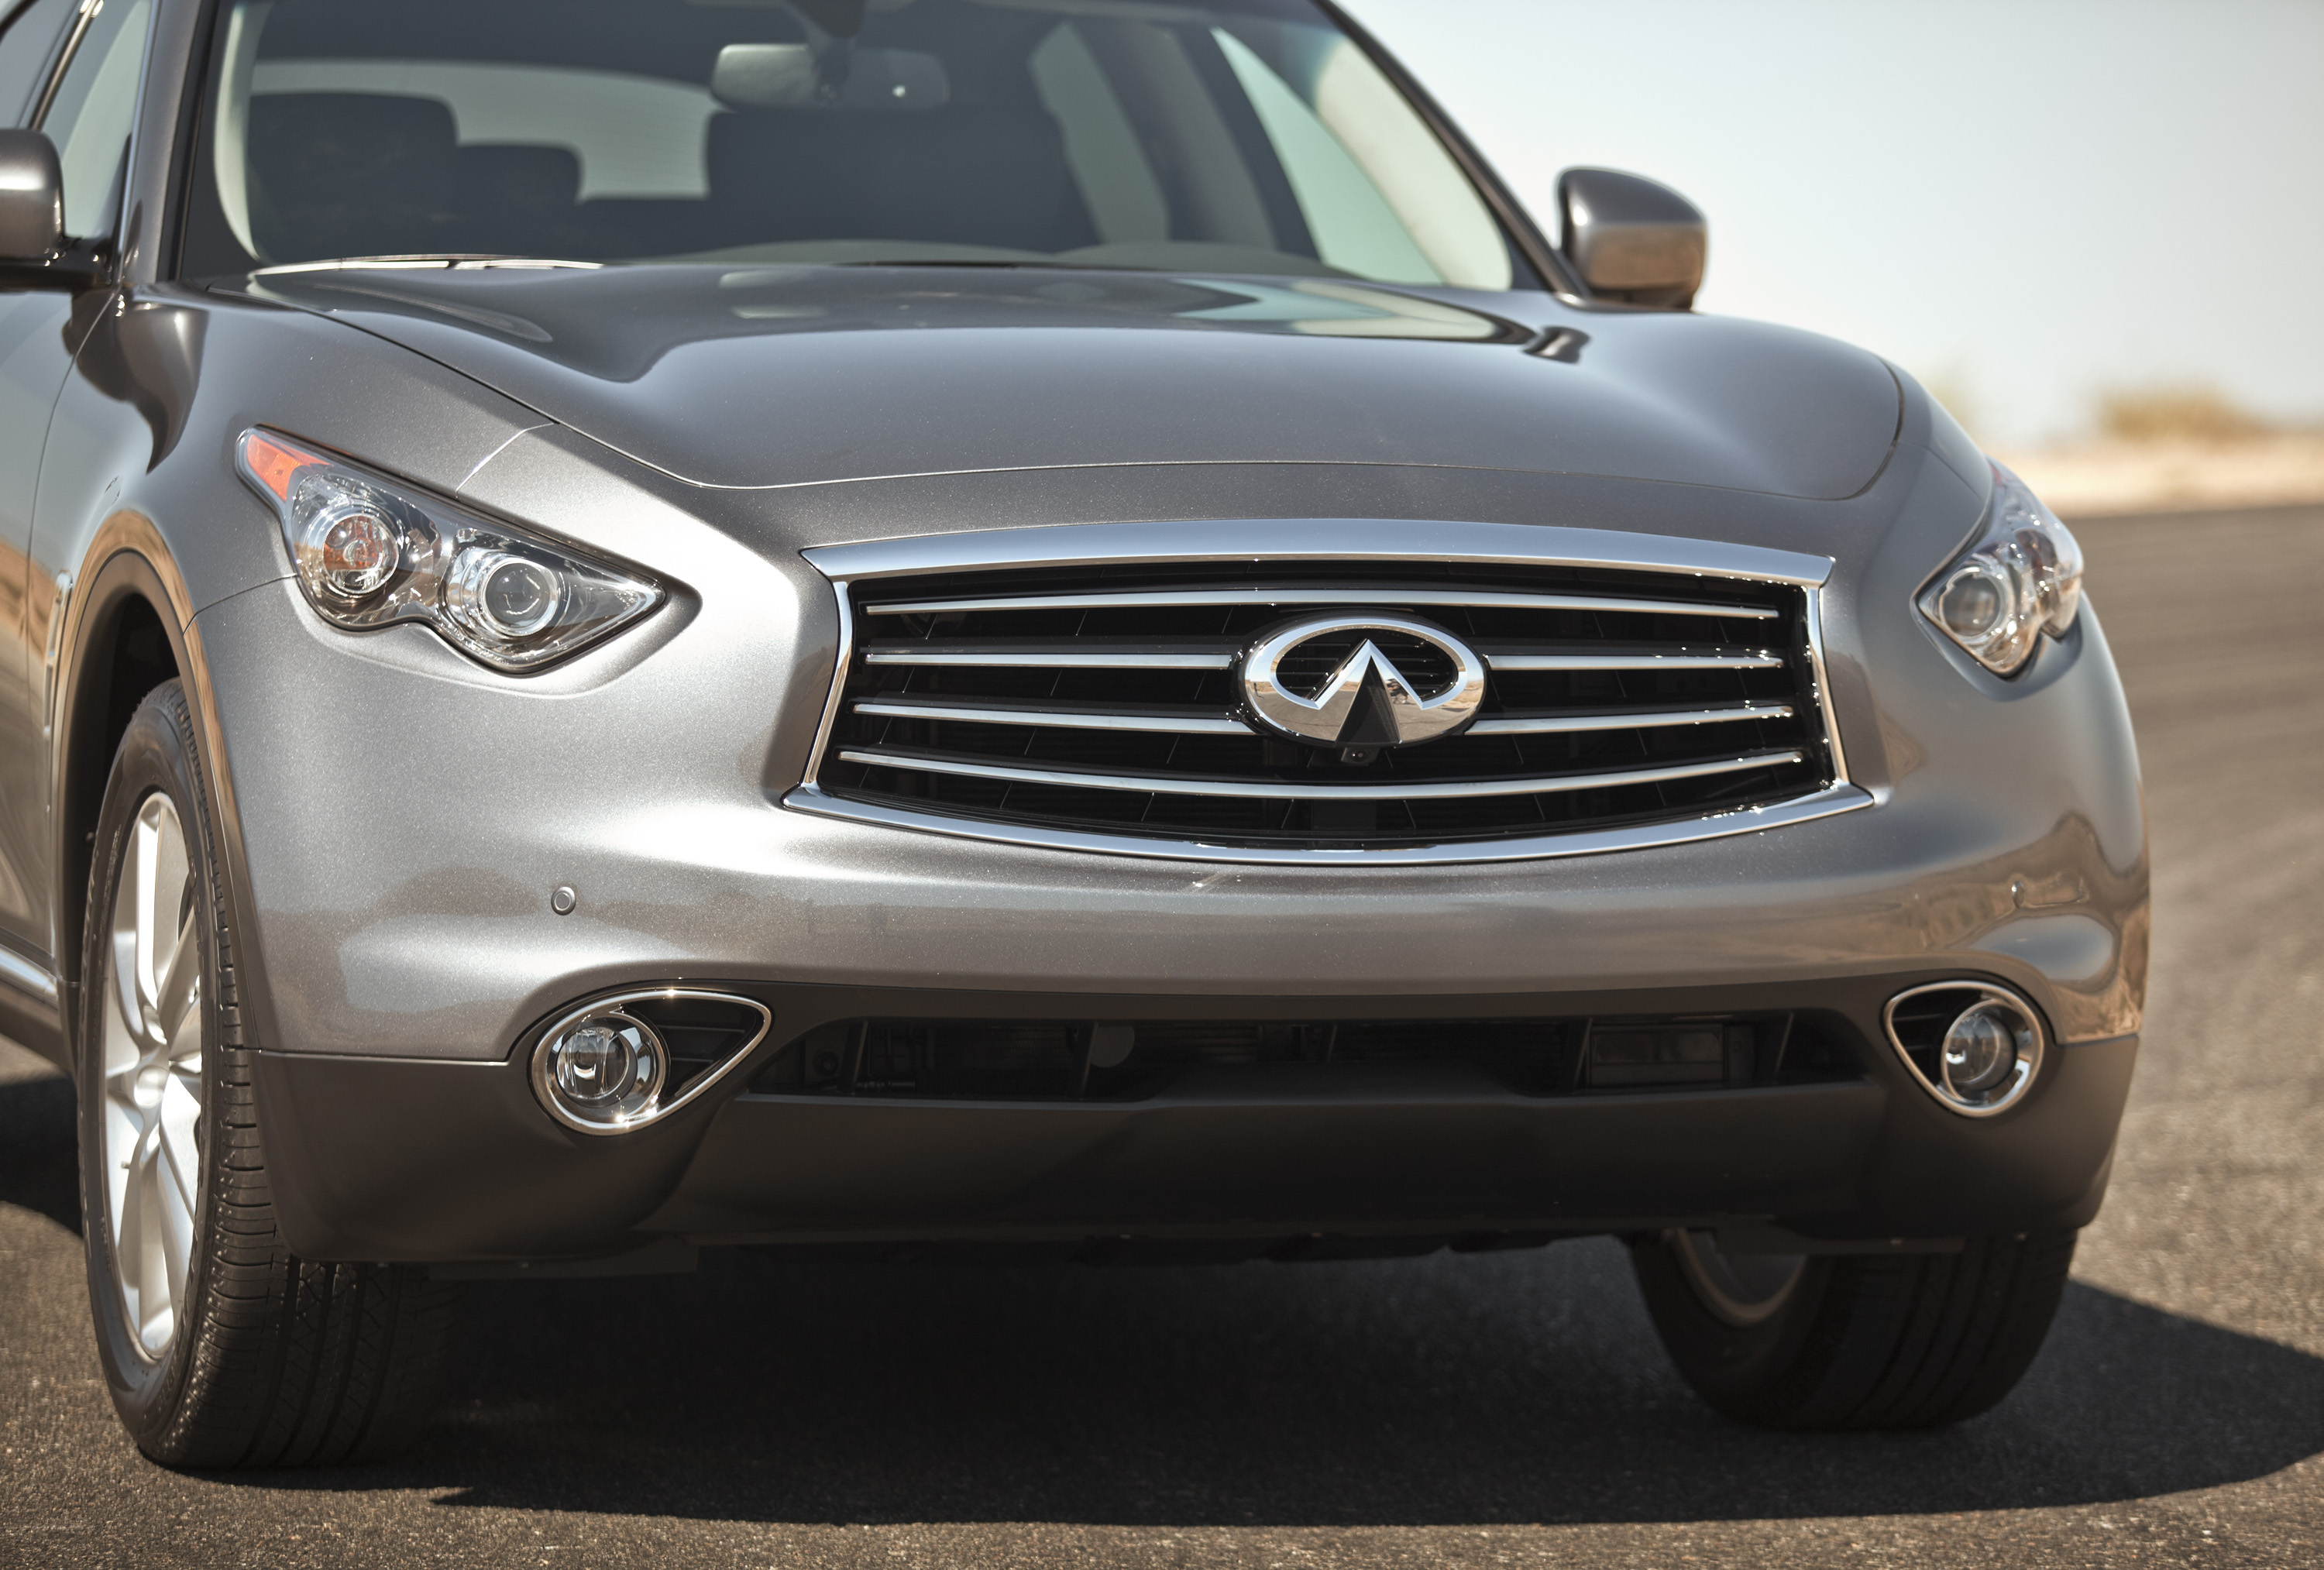 2013 infiniti fx37 front view